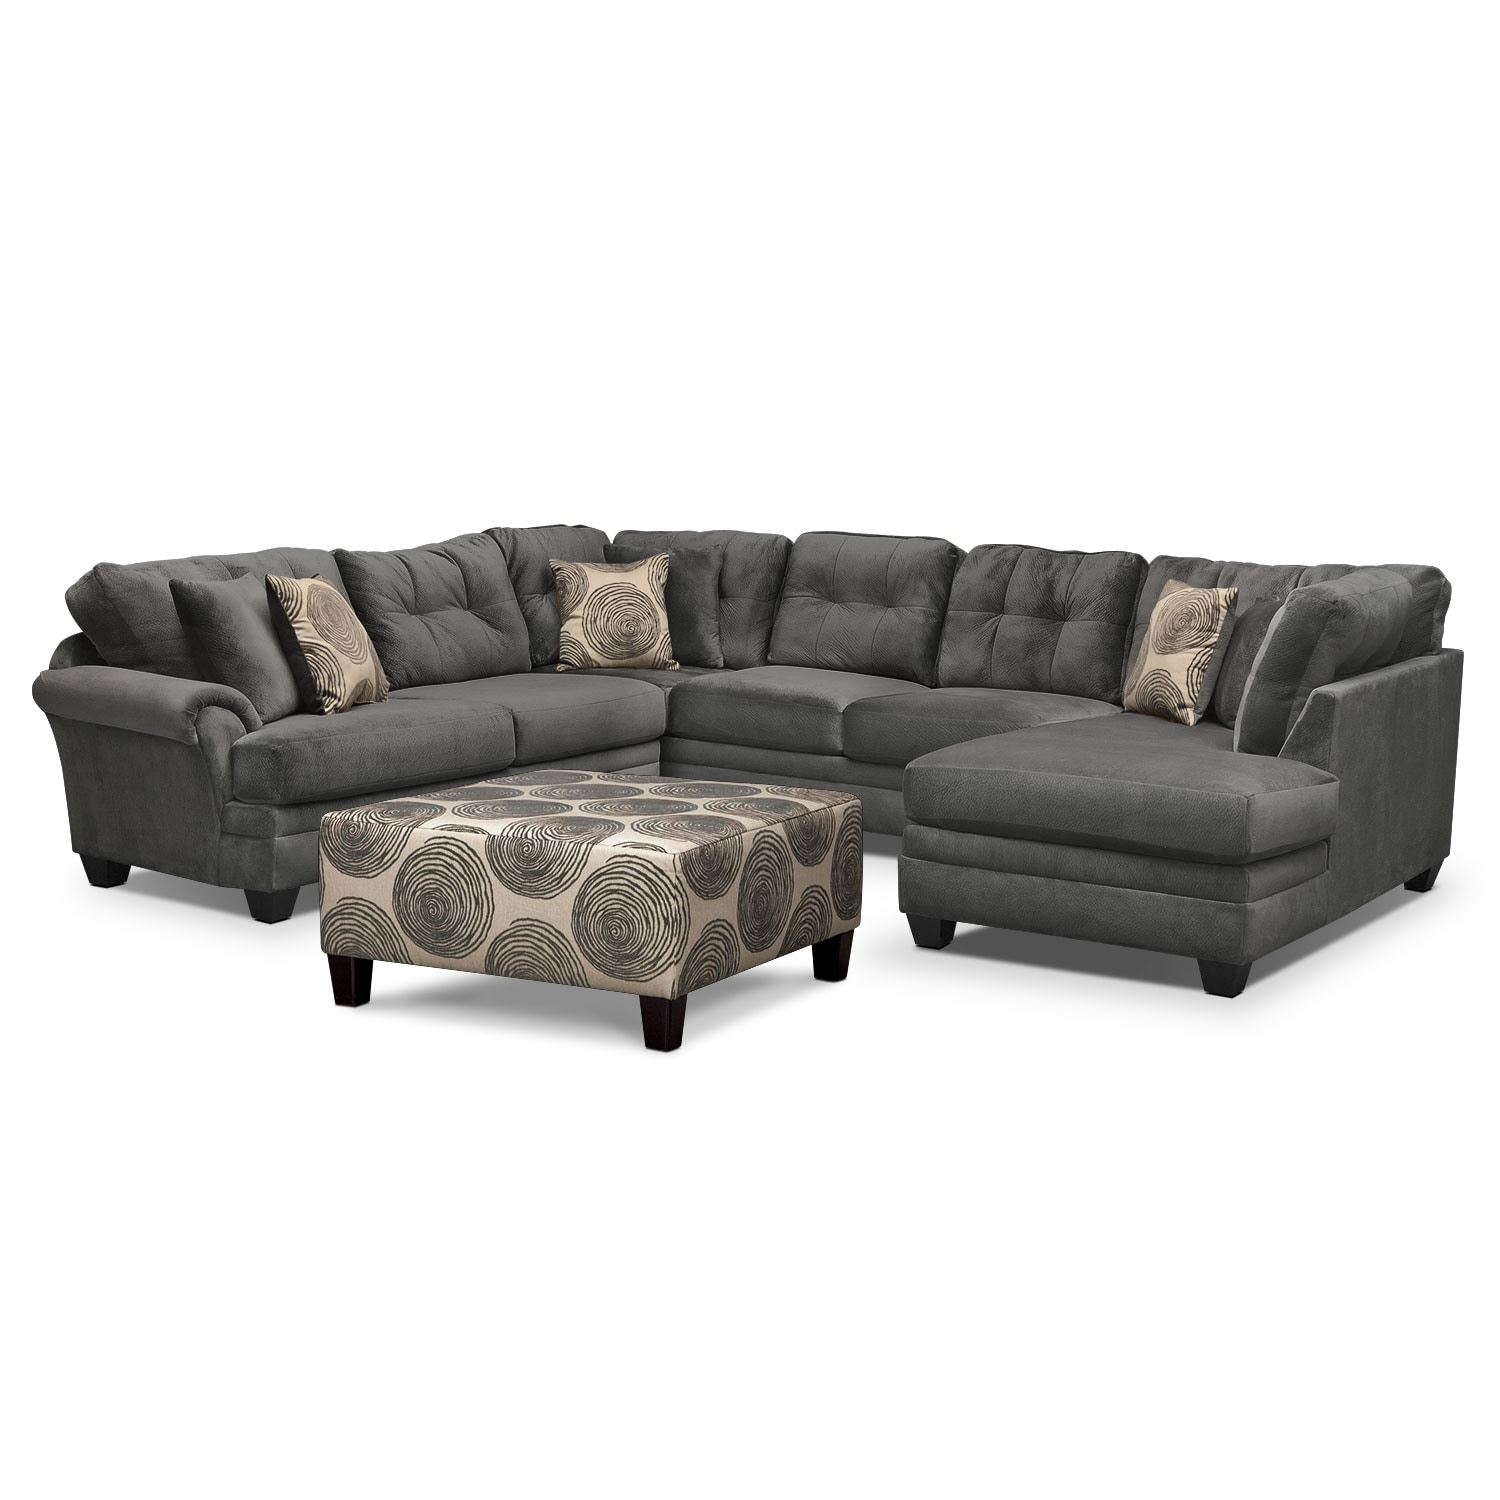 cordelle 3 piece sectional and cocktail ottoman set gray value city furniture. Black Bedroom Furniture Sets. Home Design Ideas